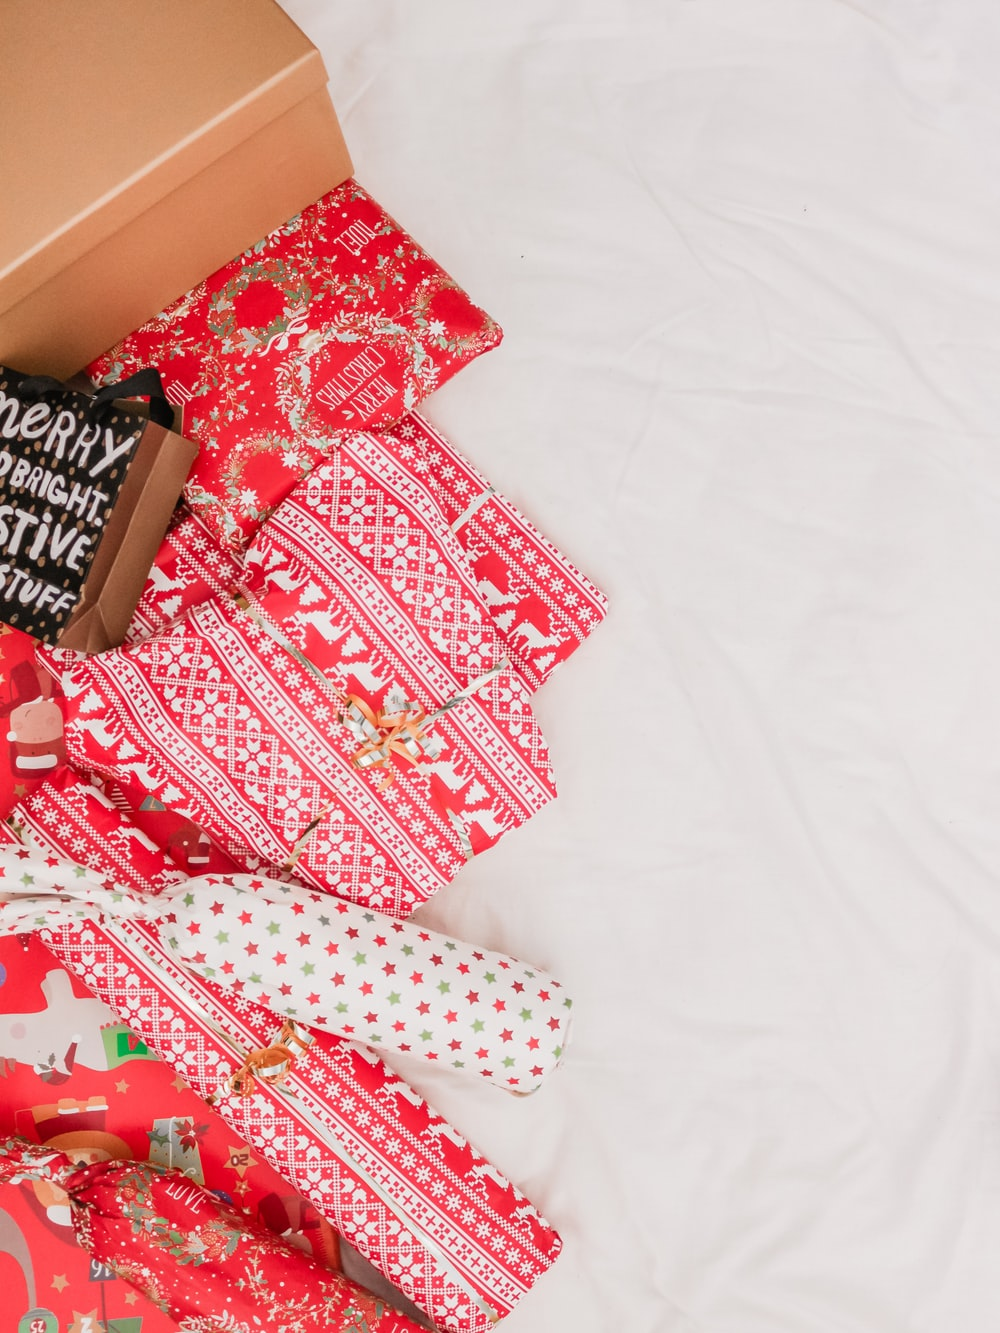 Christmas gifts on bed